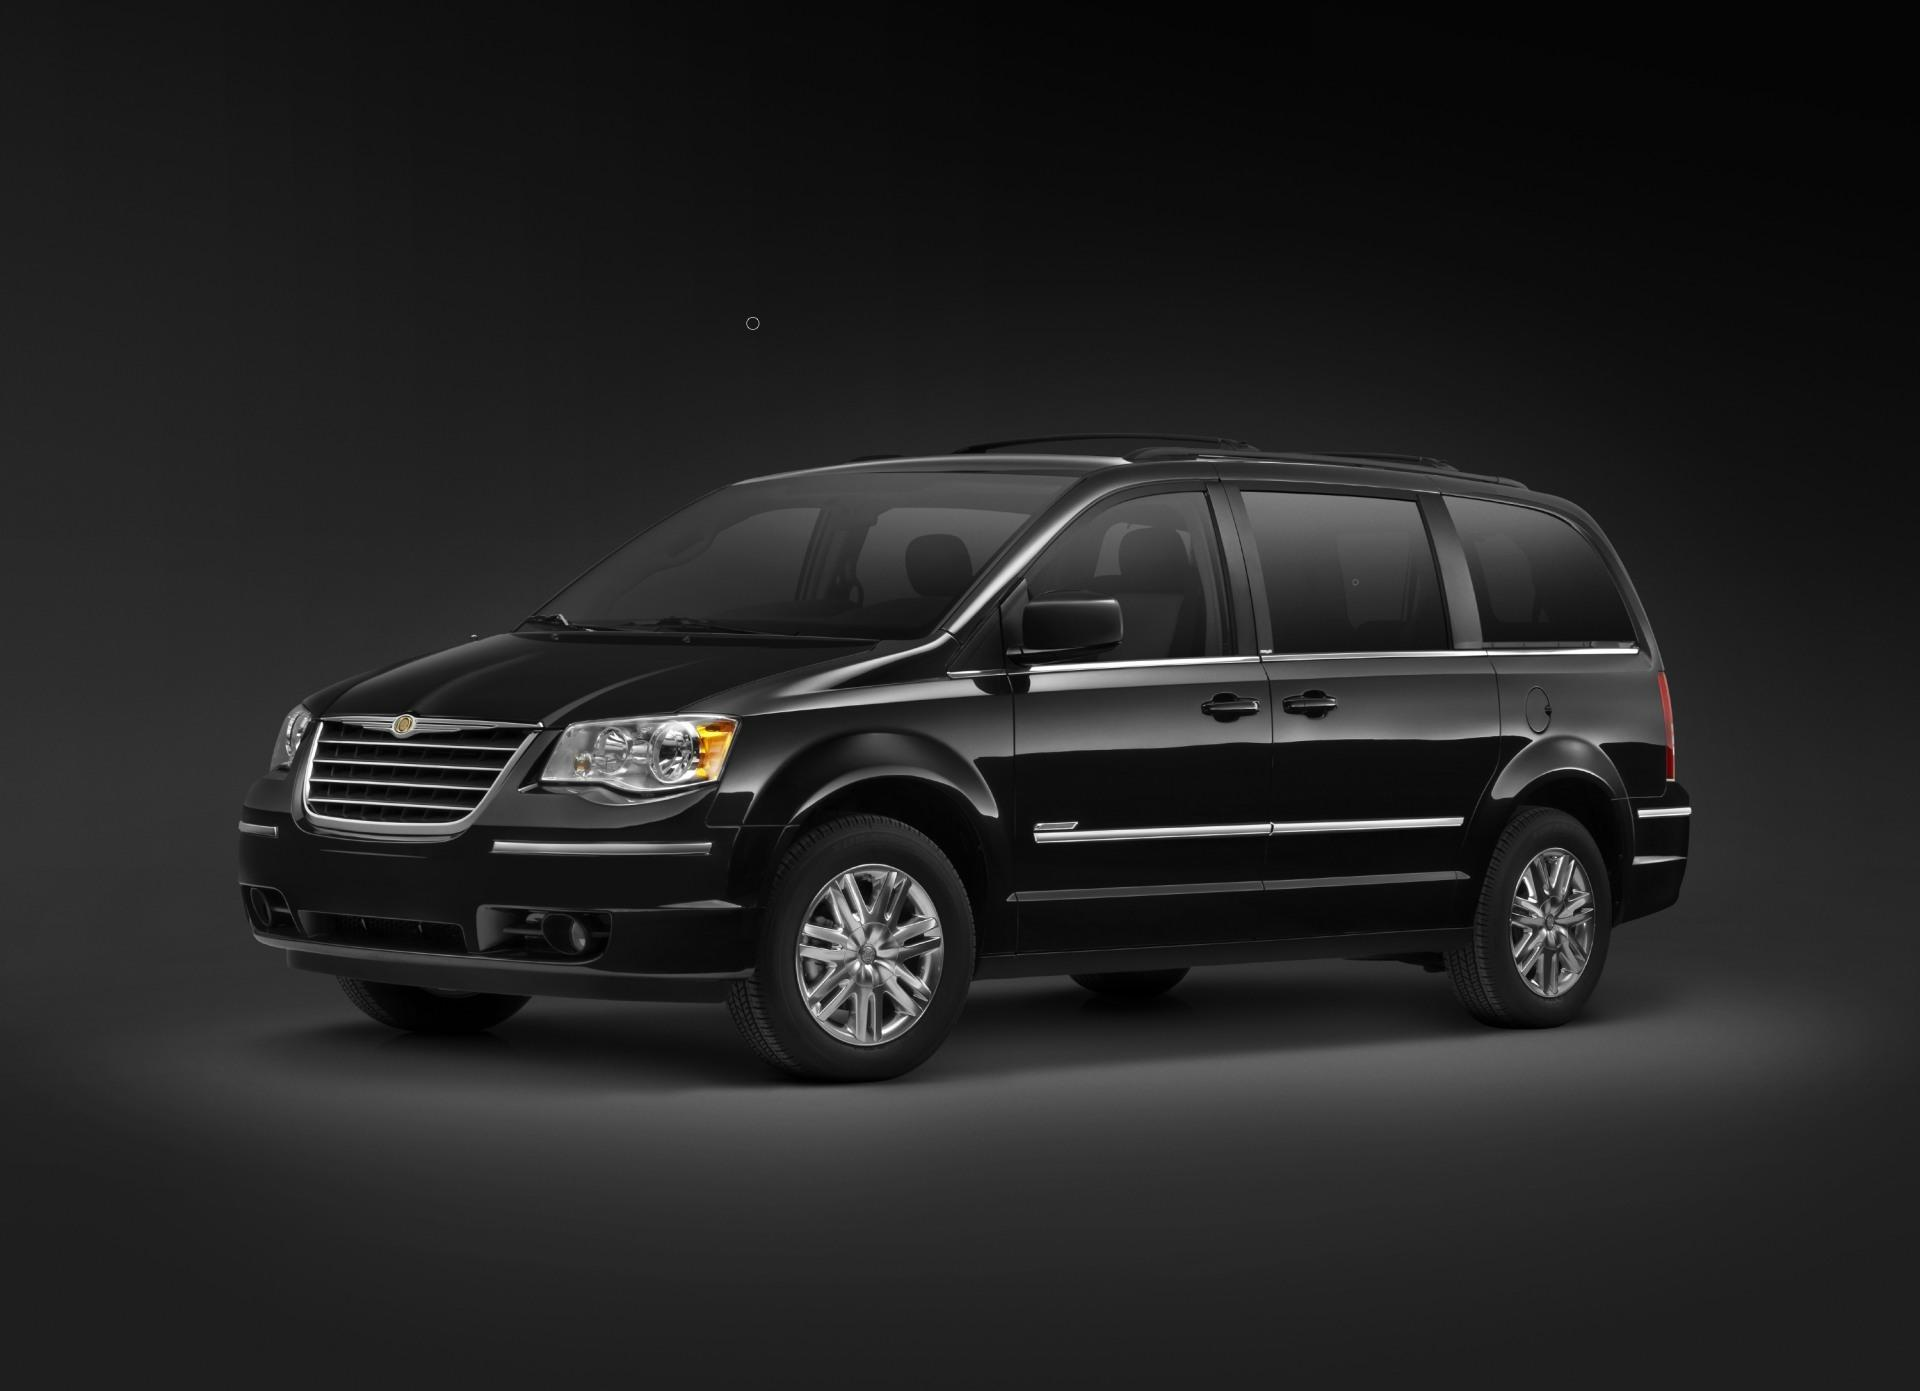 Town And Country Toyota >> 2010 Chrysler Town & Country Walter P. Chrysler Signature ...